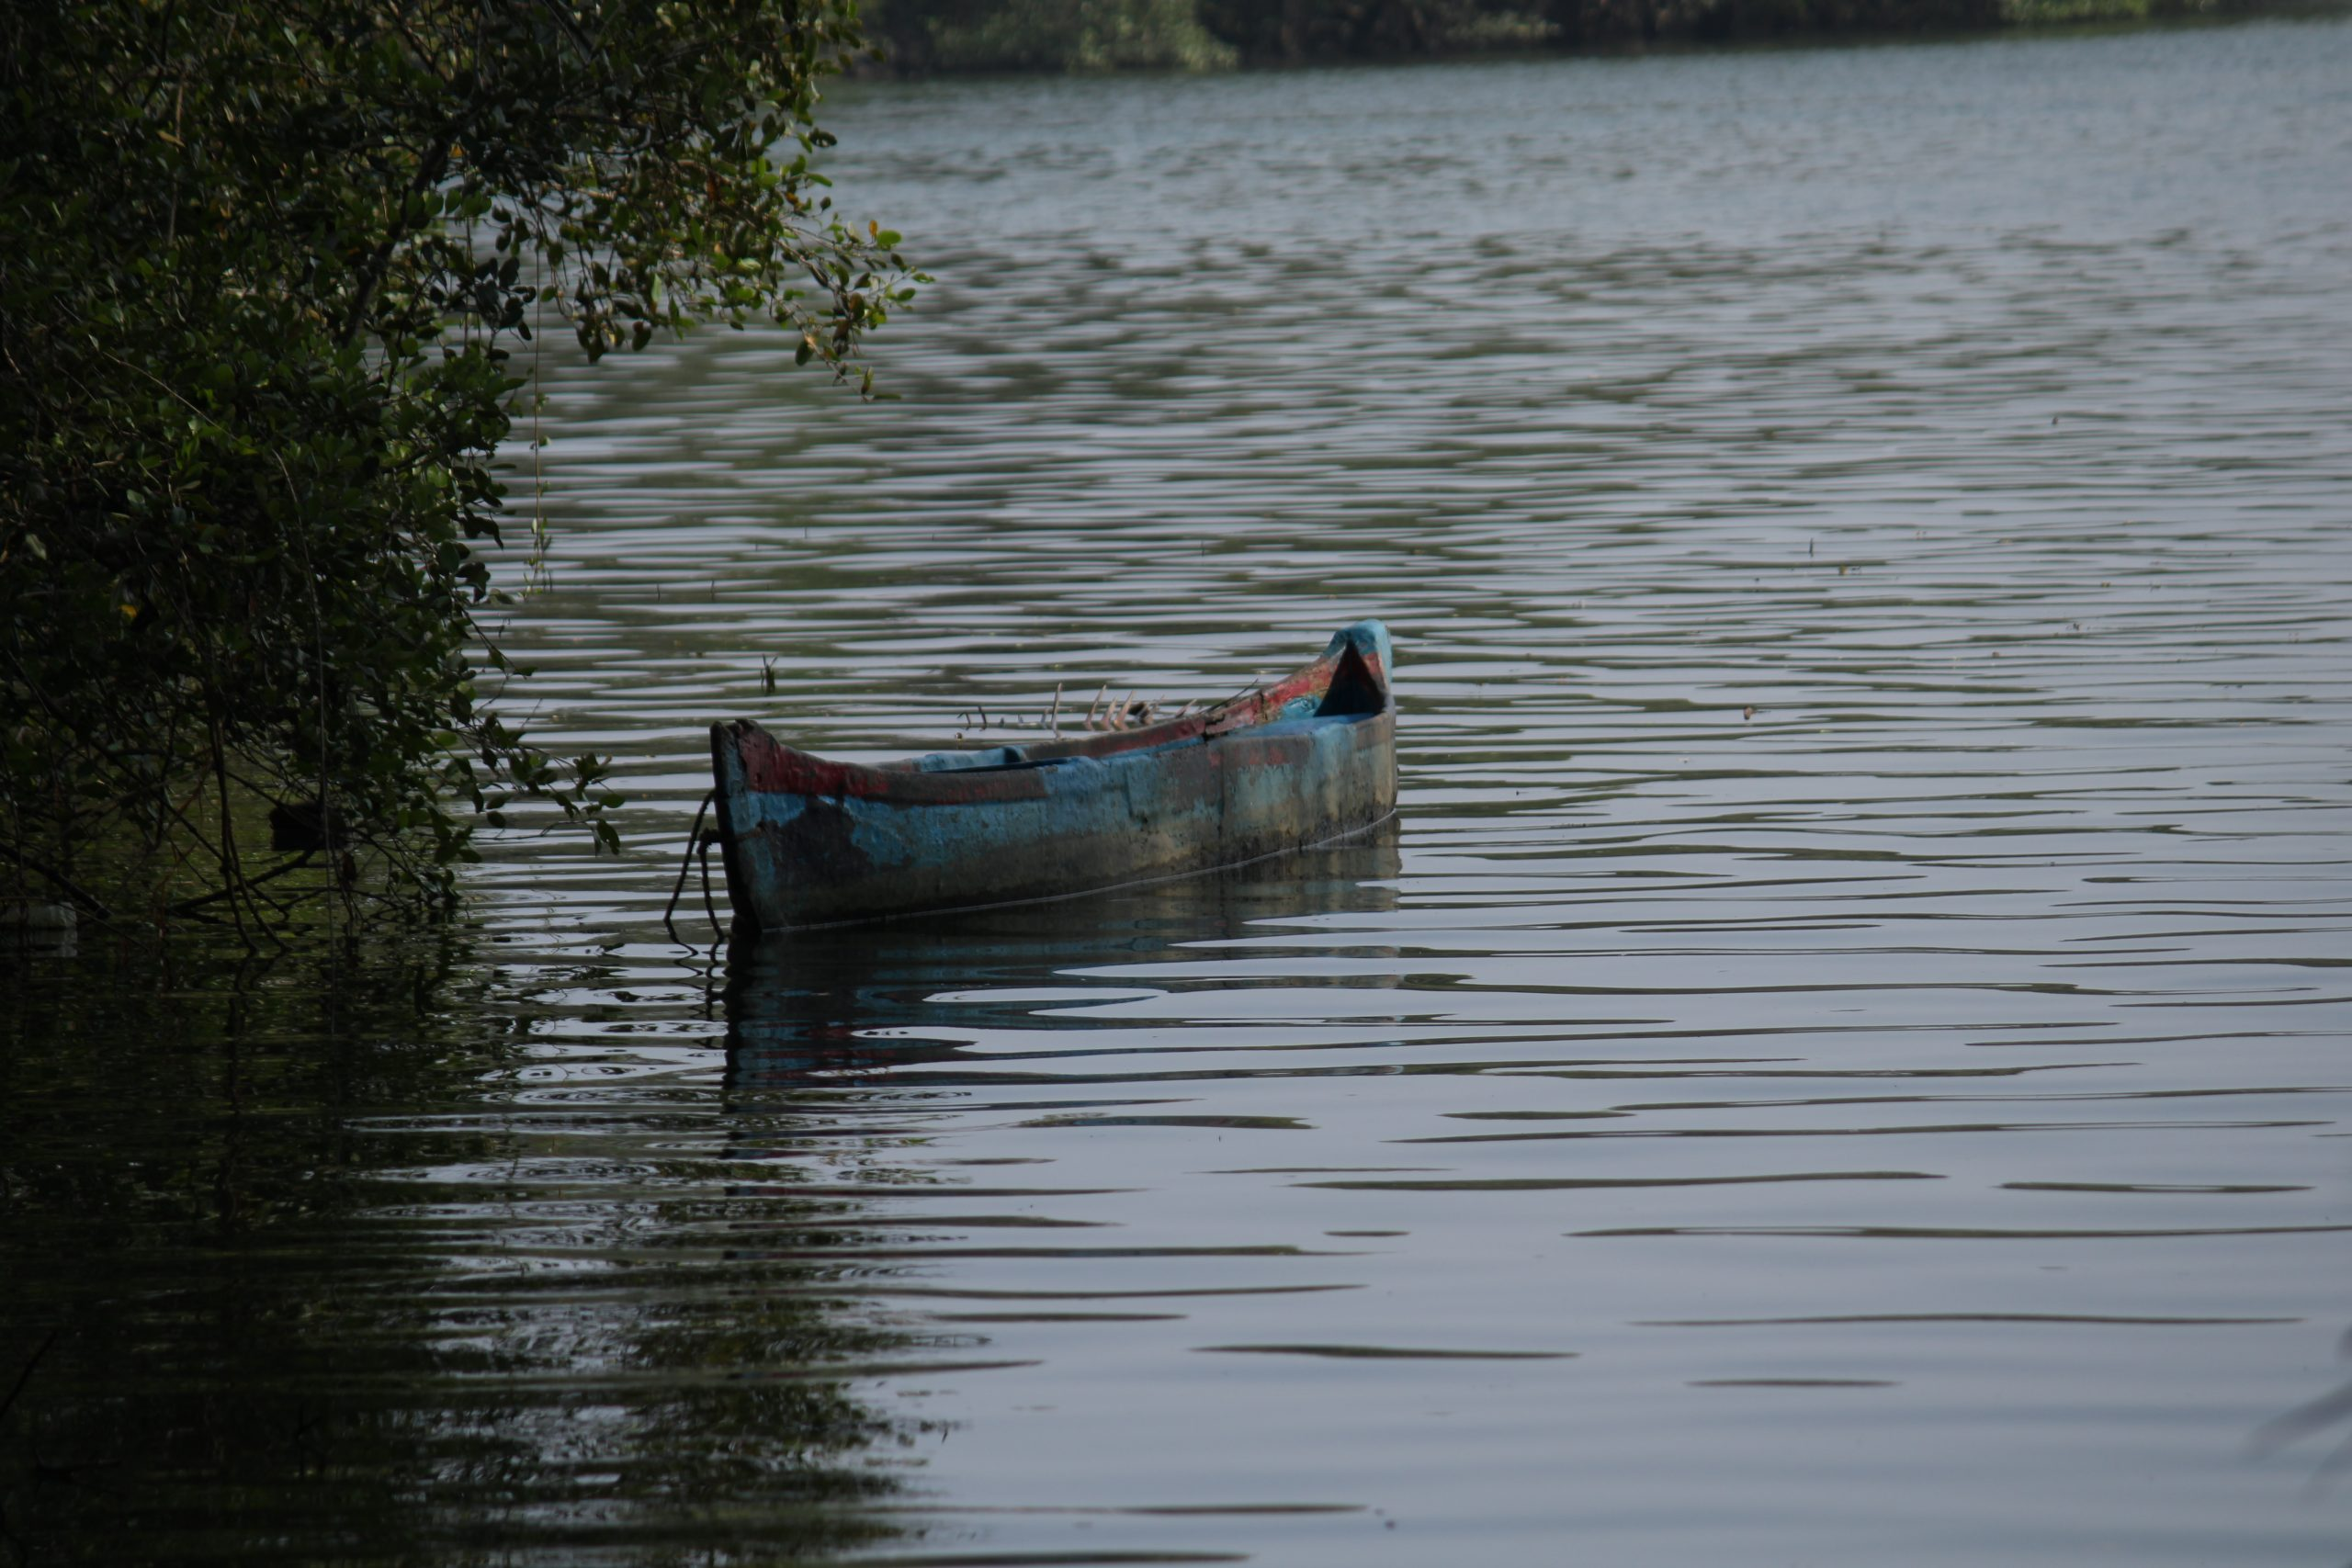 Boat in river